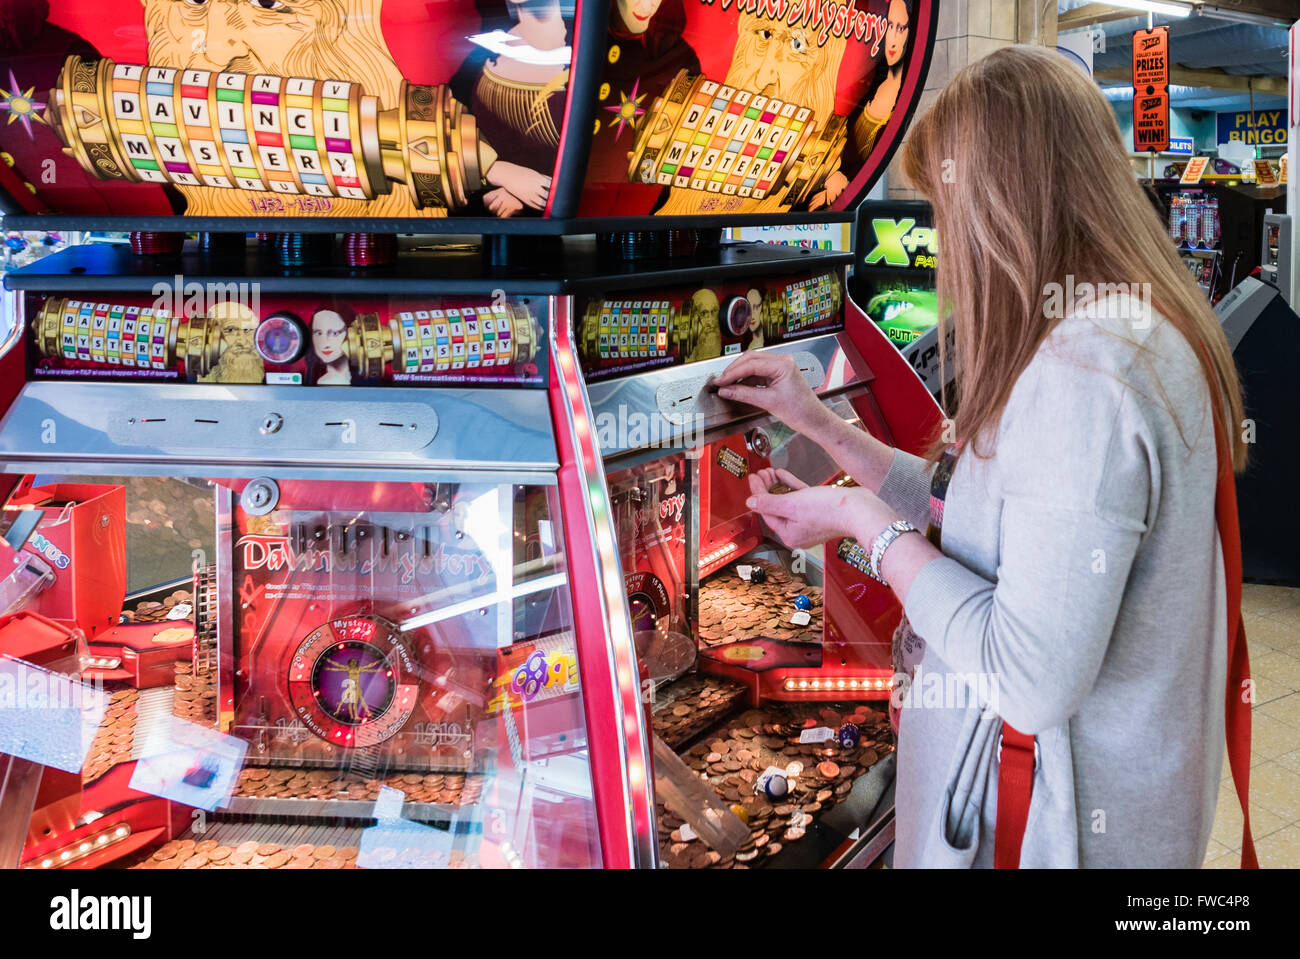 A woman plays a 2p tuppeny nudger machine in a funfair at a British seaside resort. Stock Photo